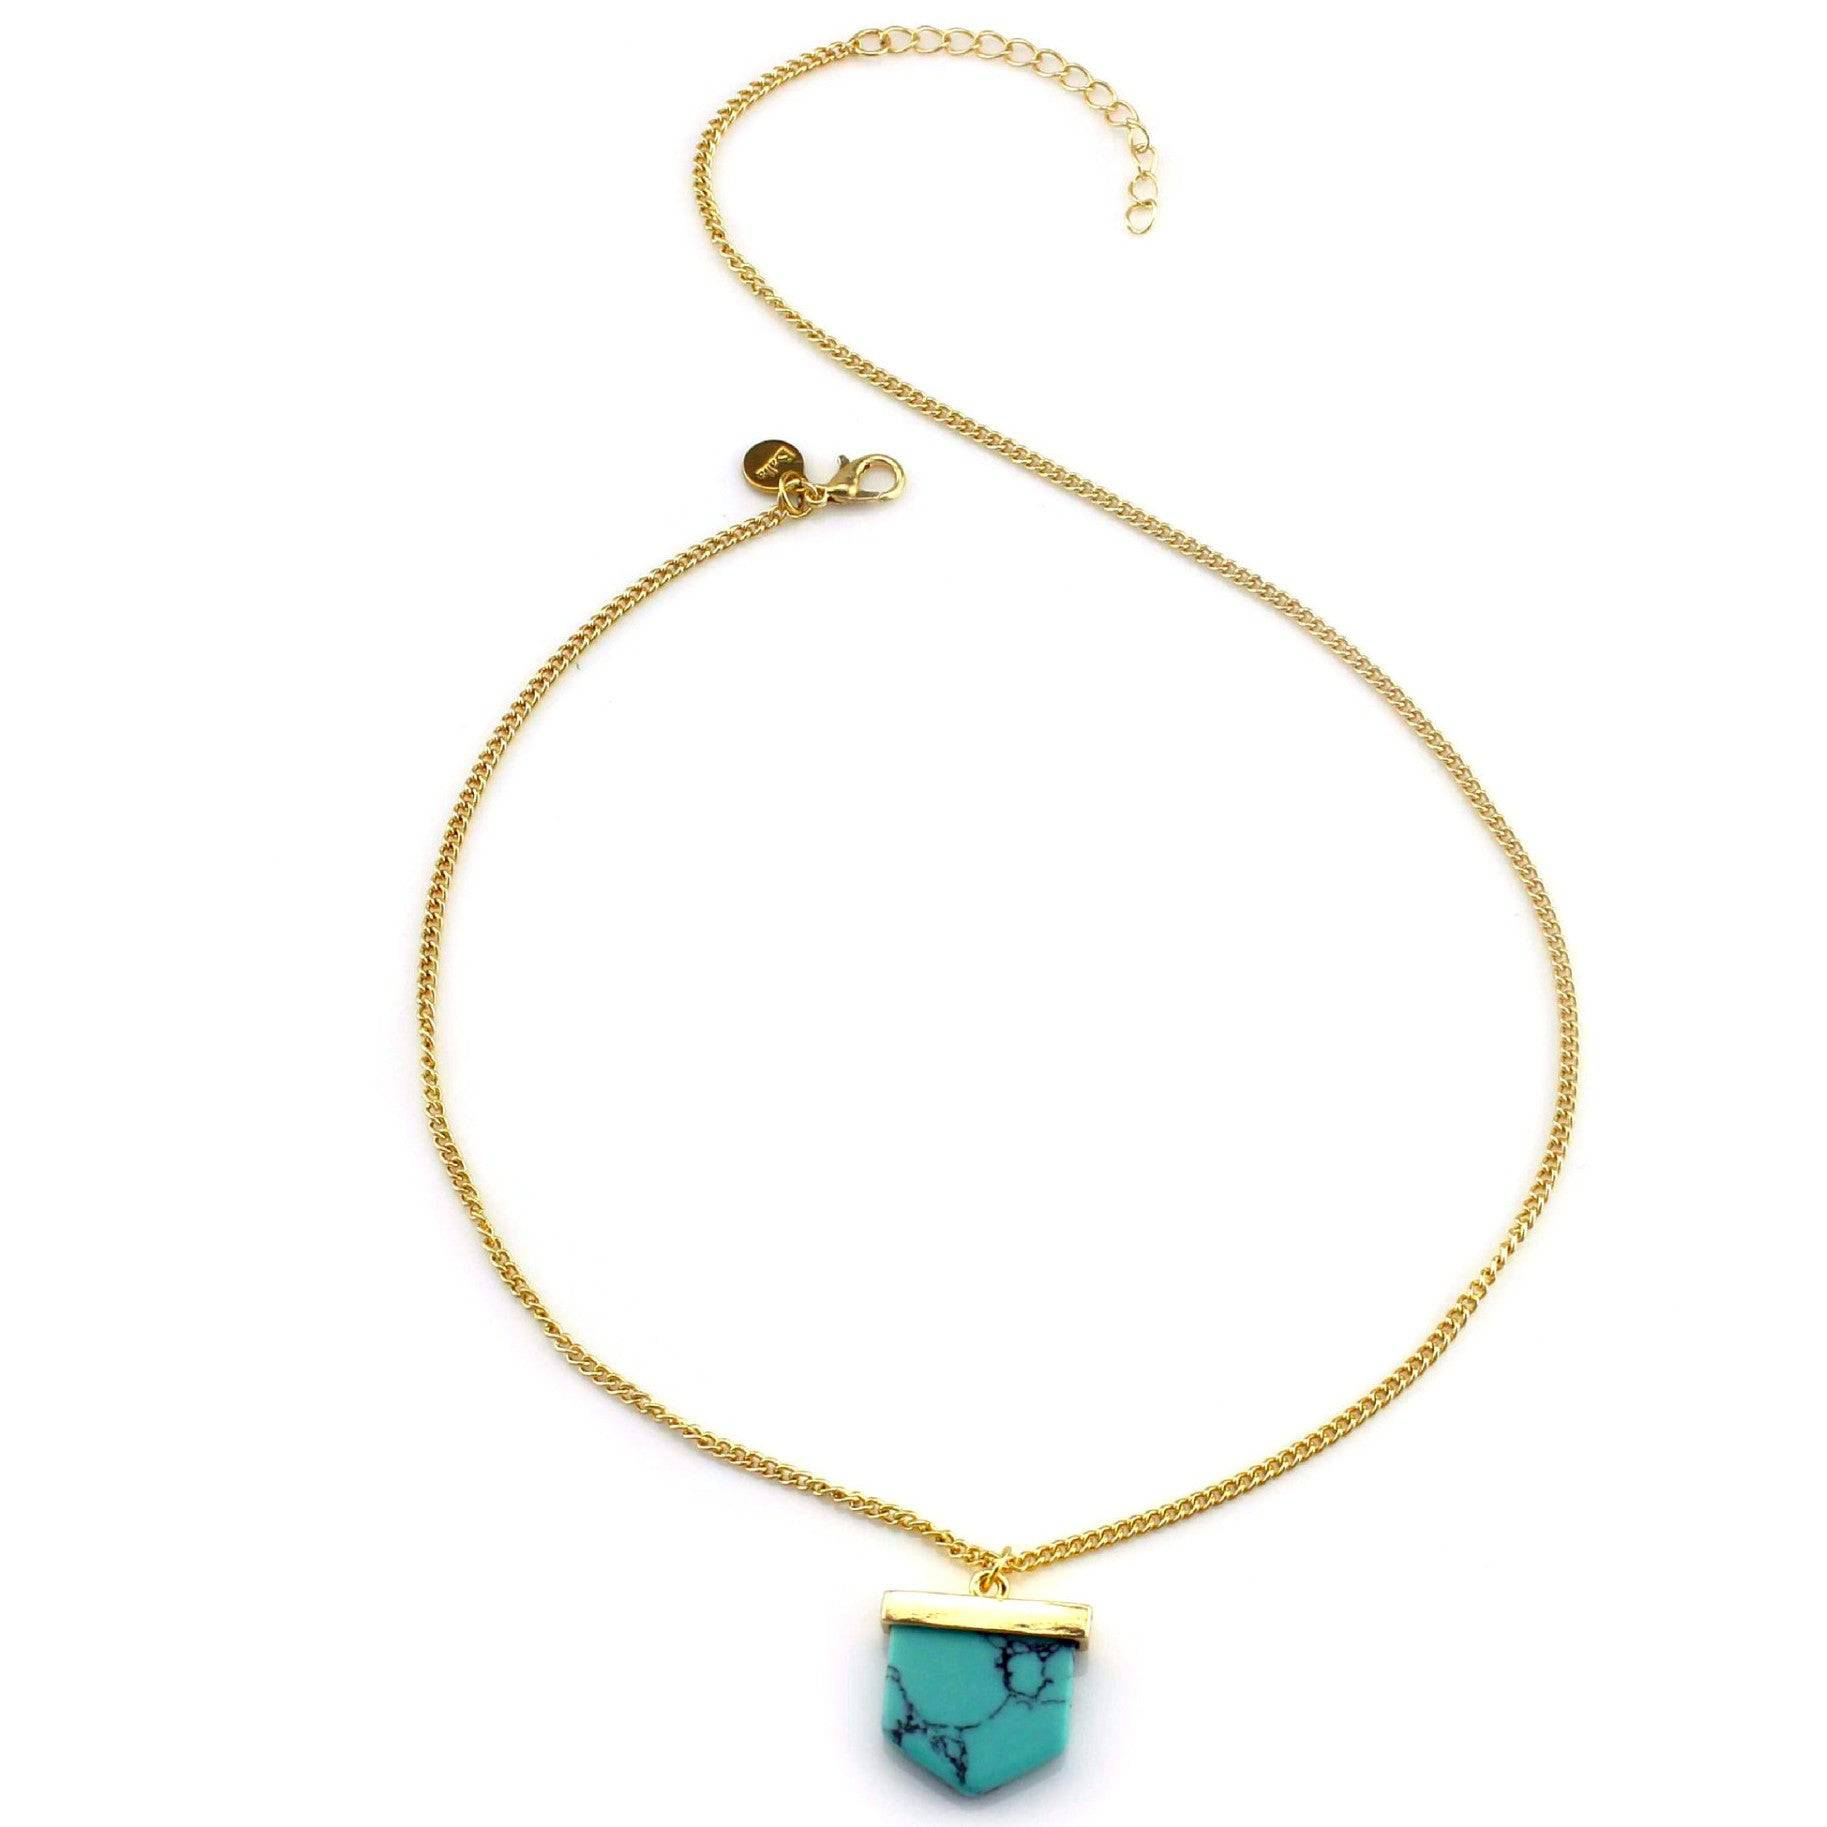 Balla Marbled Phoenix Turquoise and Gold Chain Pendant Necklace